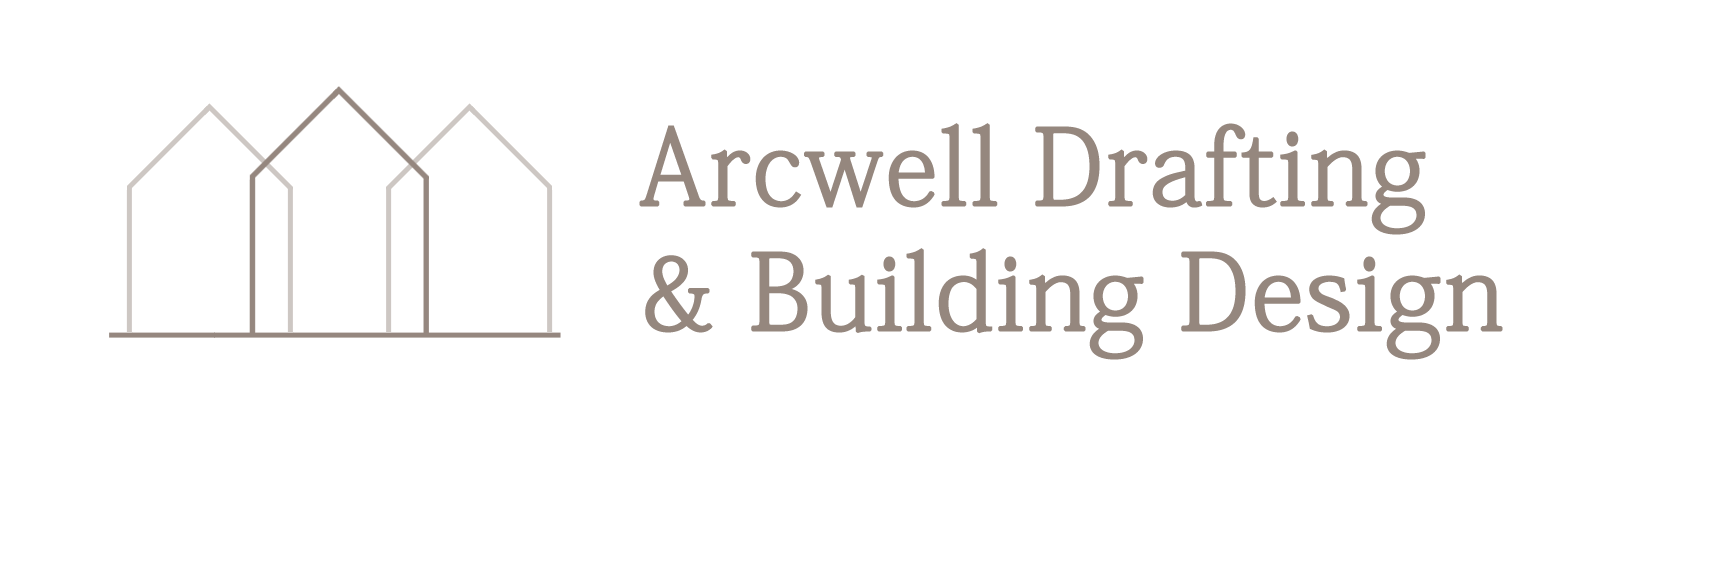 Arcwell Drafting & Design